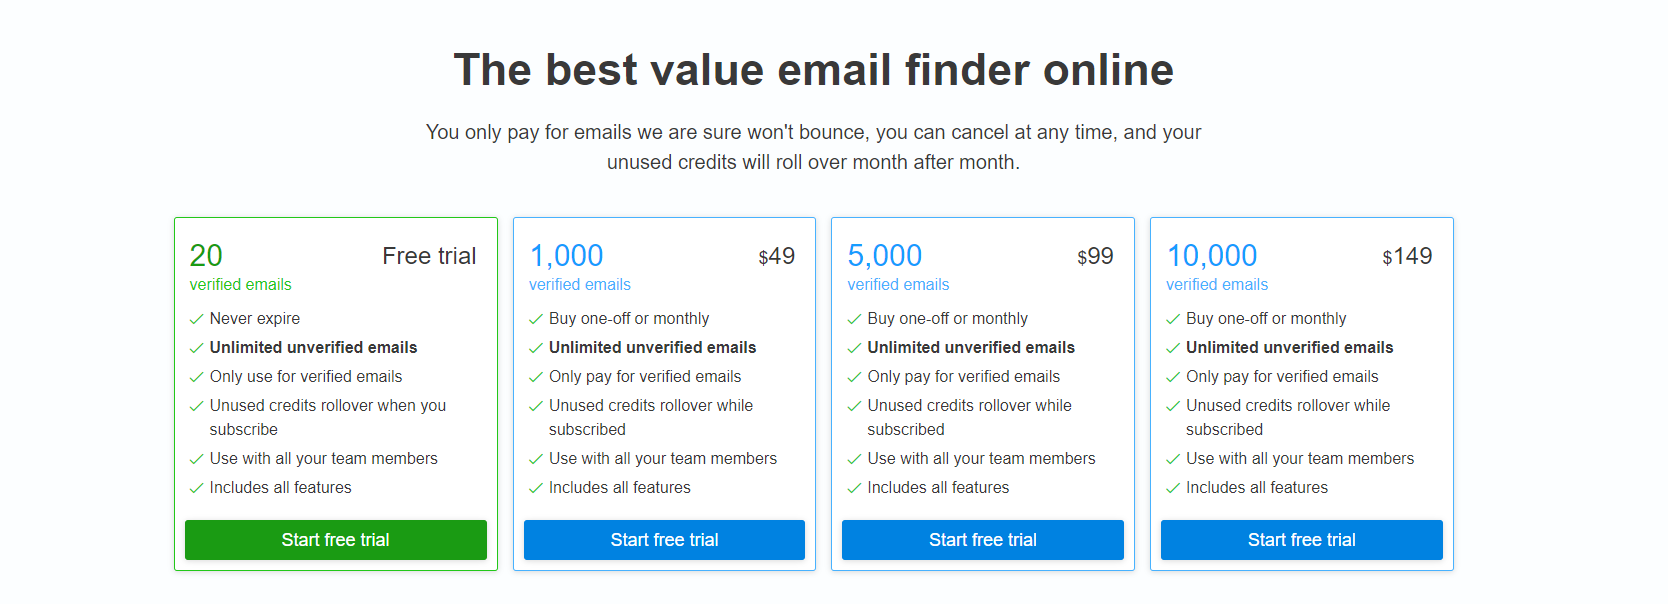 Anymail finder pricing